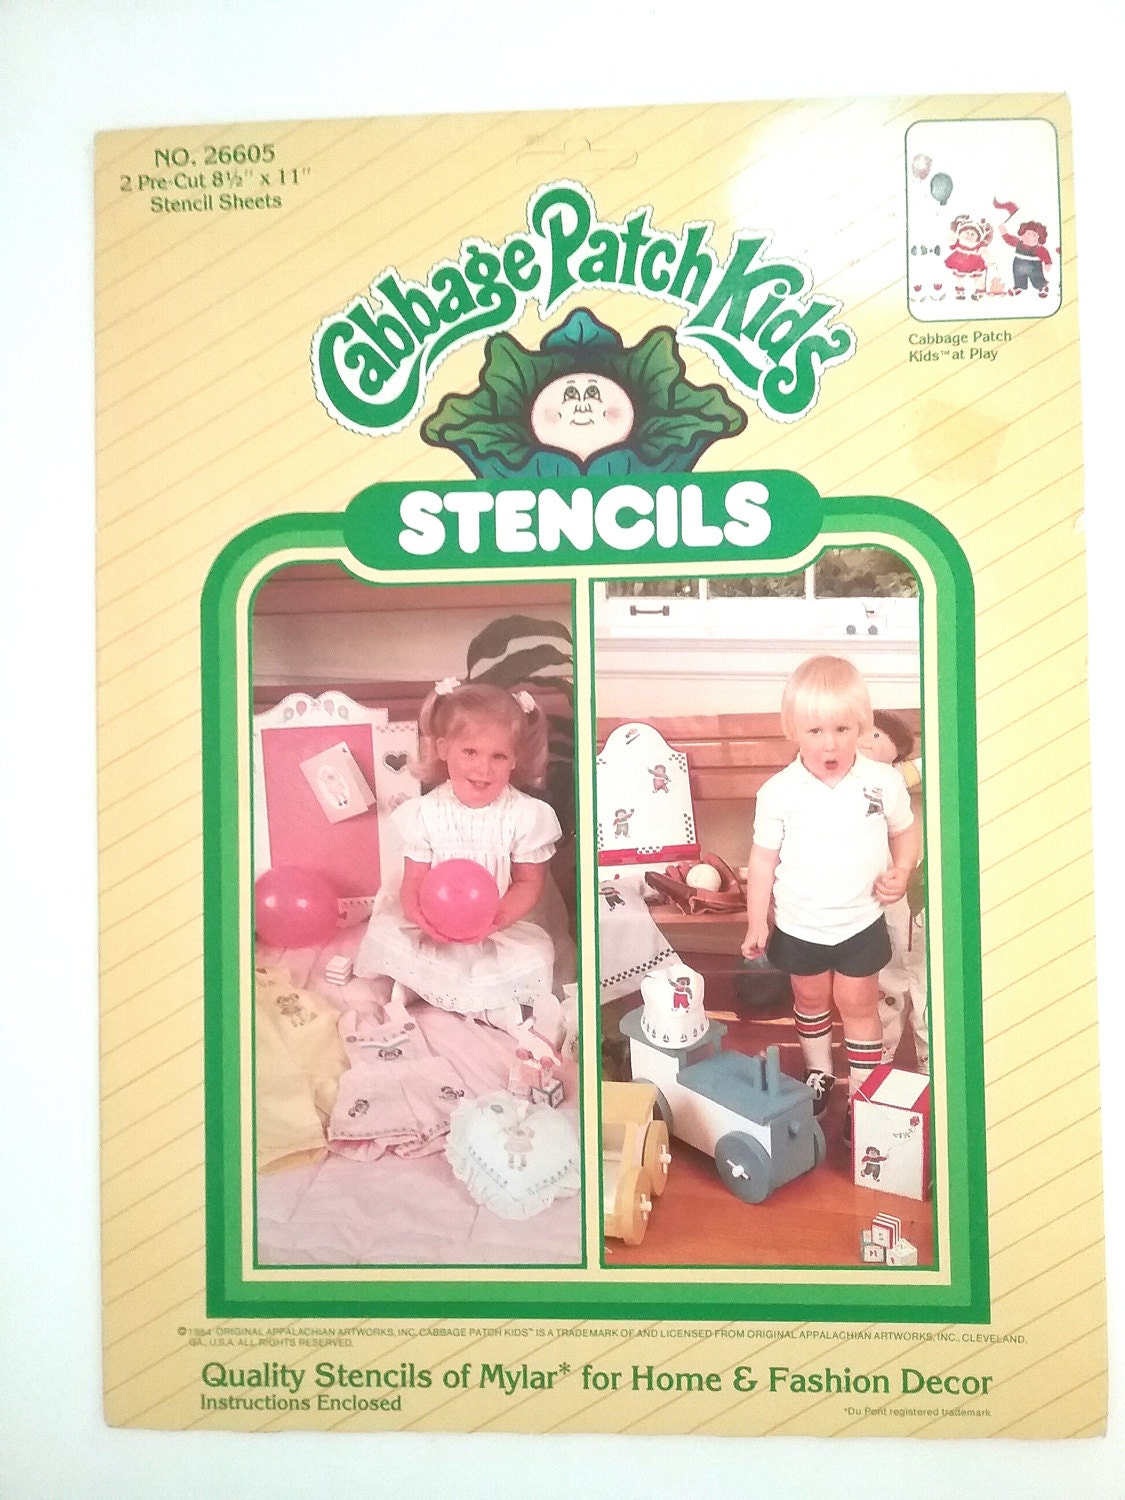 Vintage cabbage patch kids stencils stencil templates Vintage childrens room decor